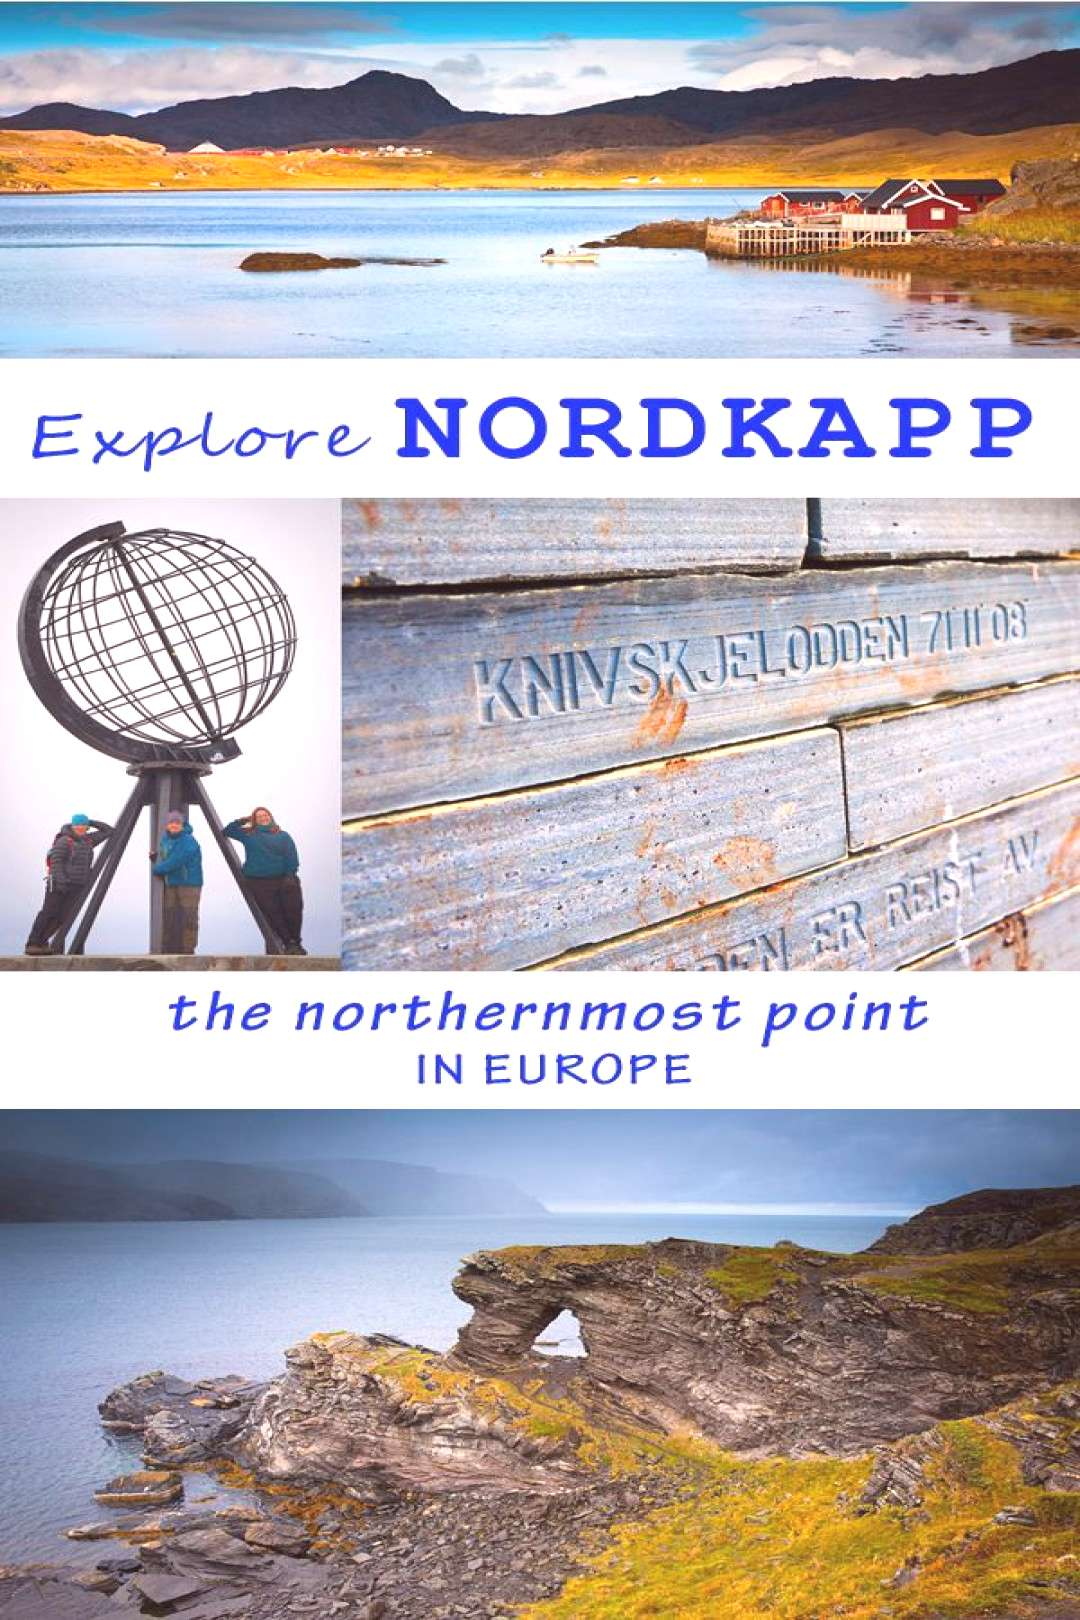 complete guide to North Cape- the northernmost point in Europe. How to get there, free entrance+map